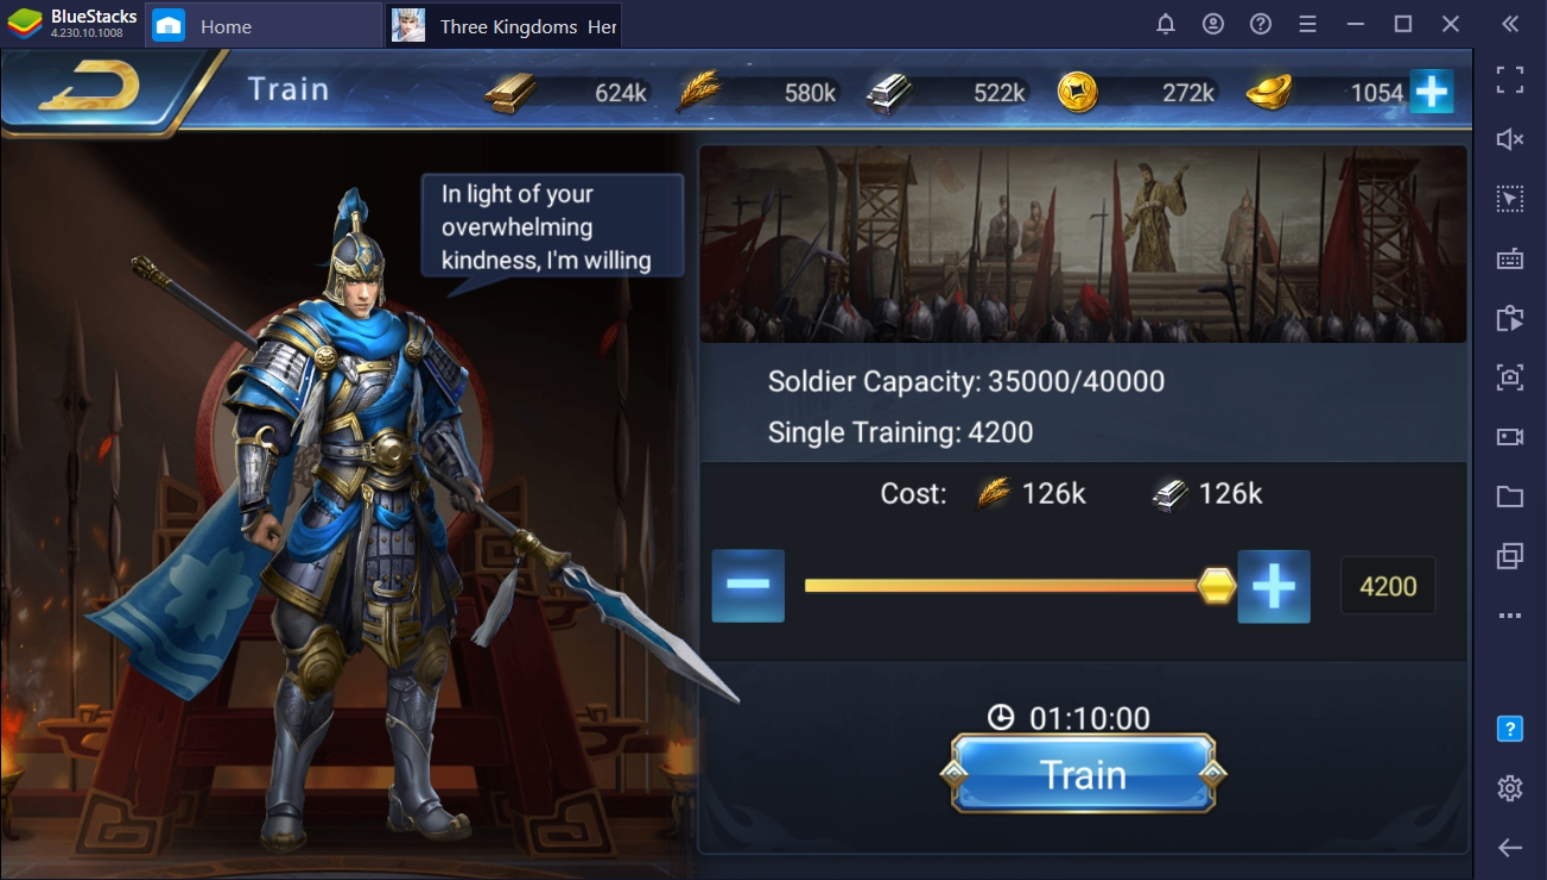 Three Kingdoms: Heroes Saga on PC – Tips and Tricks for Beginners